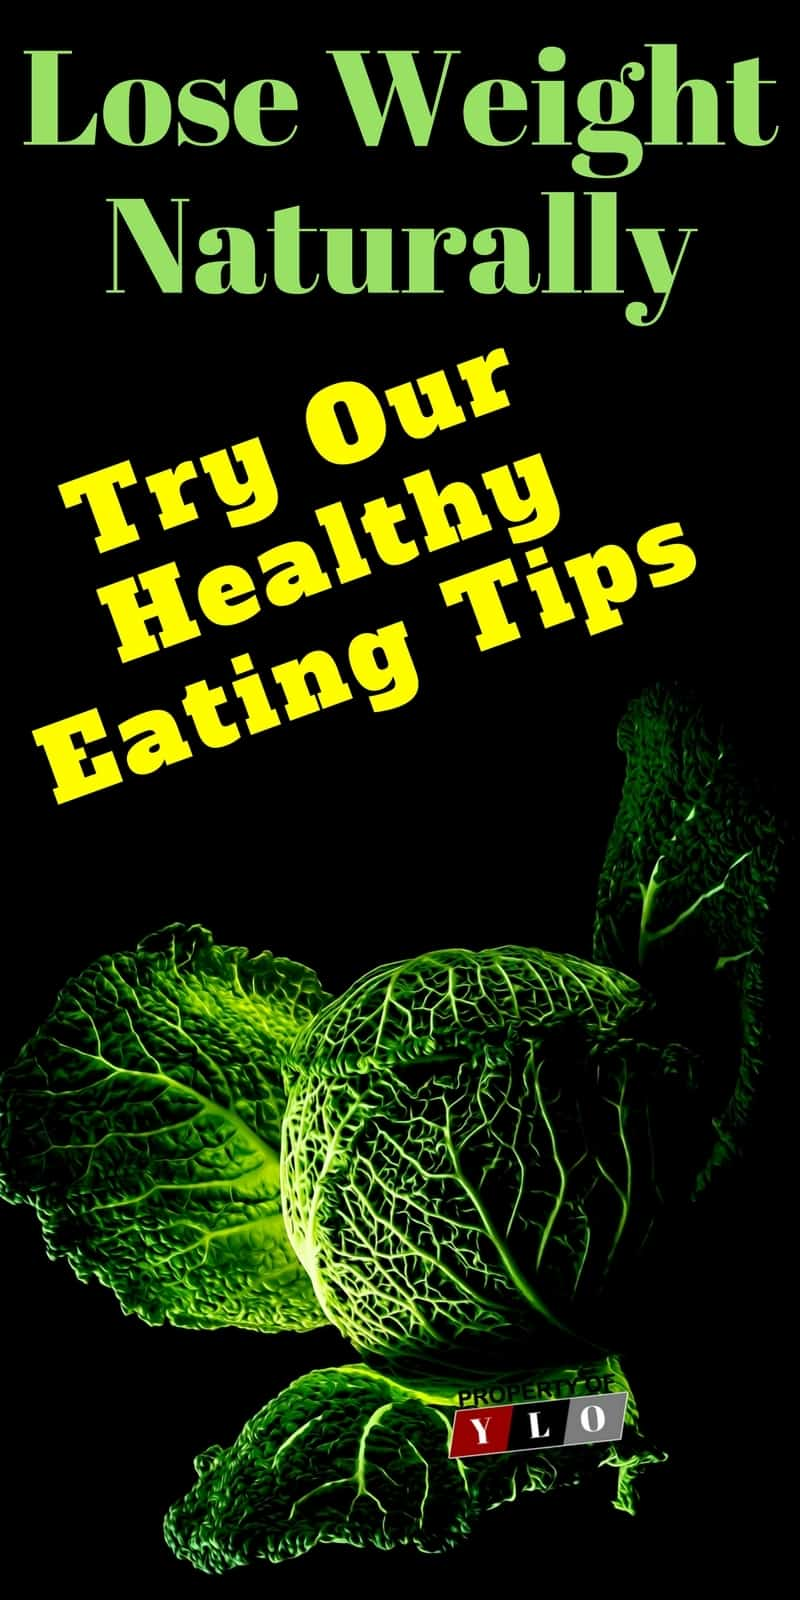 The Natural Treatment for Weight Loss is Healthy Eating | Poor Eating Habits Can Be A Disaster | Weight Loss | Weight Loss Foods | Weight Loss Foods Recipes | Weight Loss Foods Fast | Weight Loss Foods Recipes Fat Burning | Weight Loss Foods Recipes Meals | Weight Loss Foods Recipes Diet Plans | Weight Loss Foods Recipes | ARoadtoTravel.com